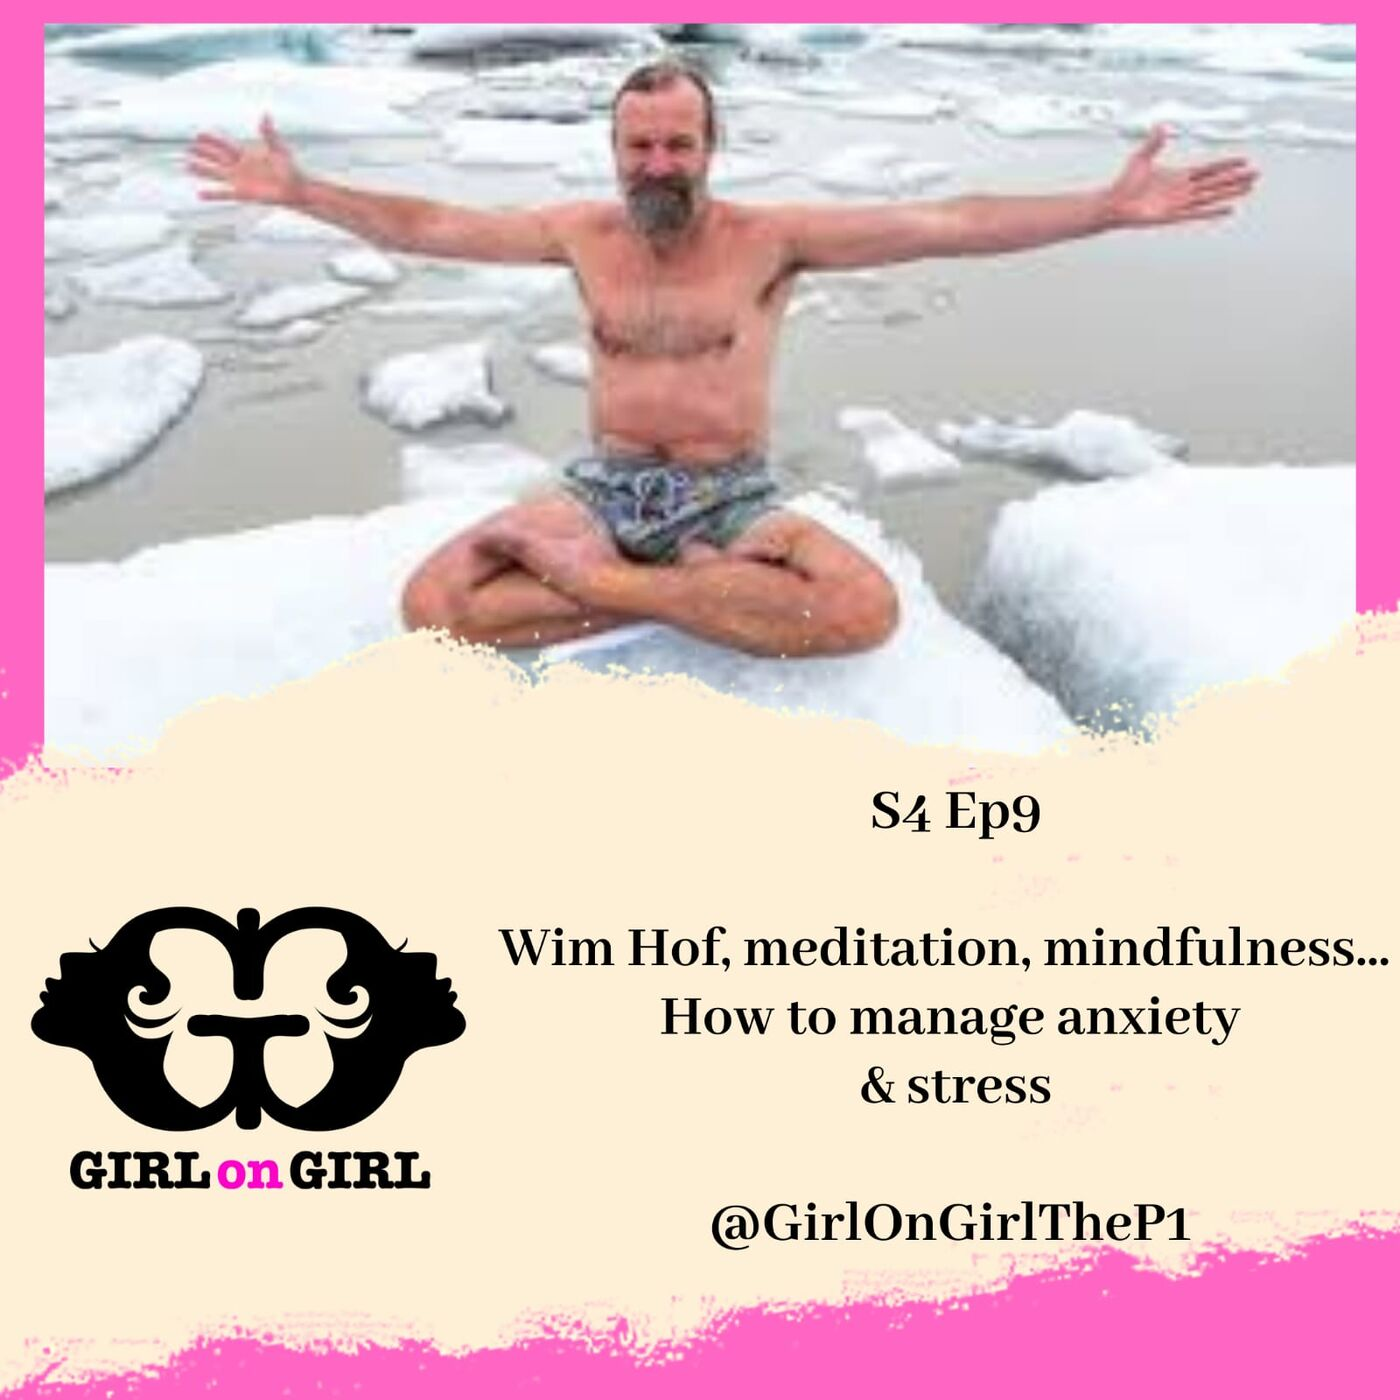 S4 Ep9: Wim Hoff, Mindfulness, Meditation... How to manage anxiety & stress